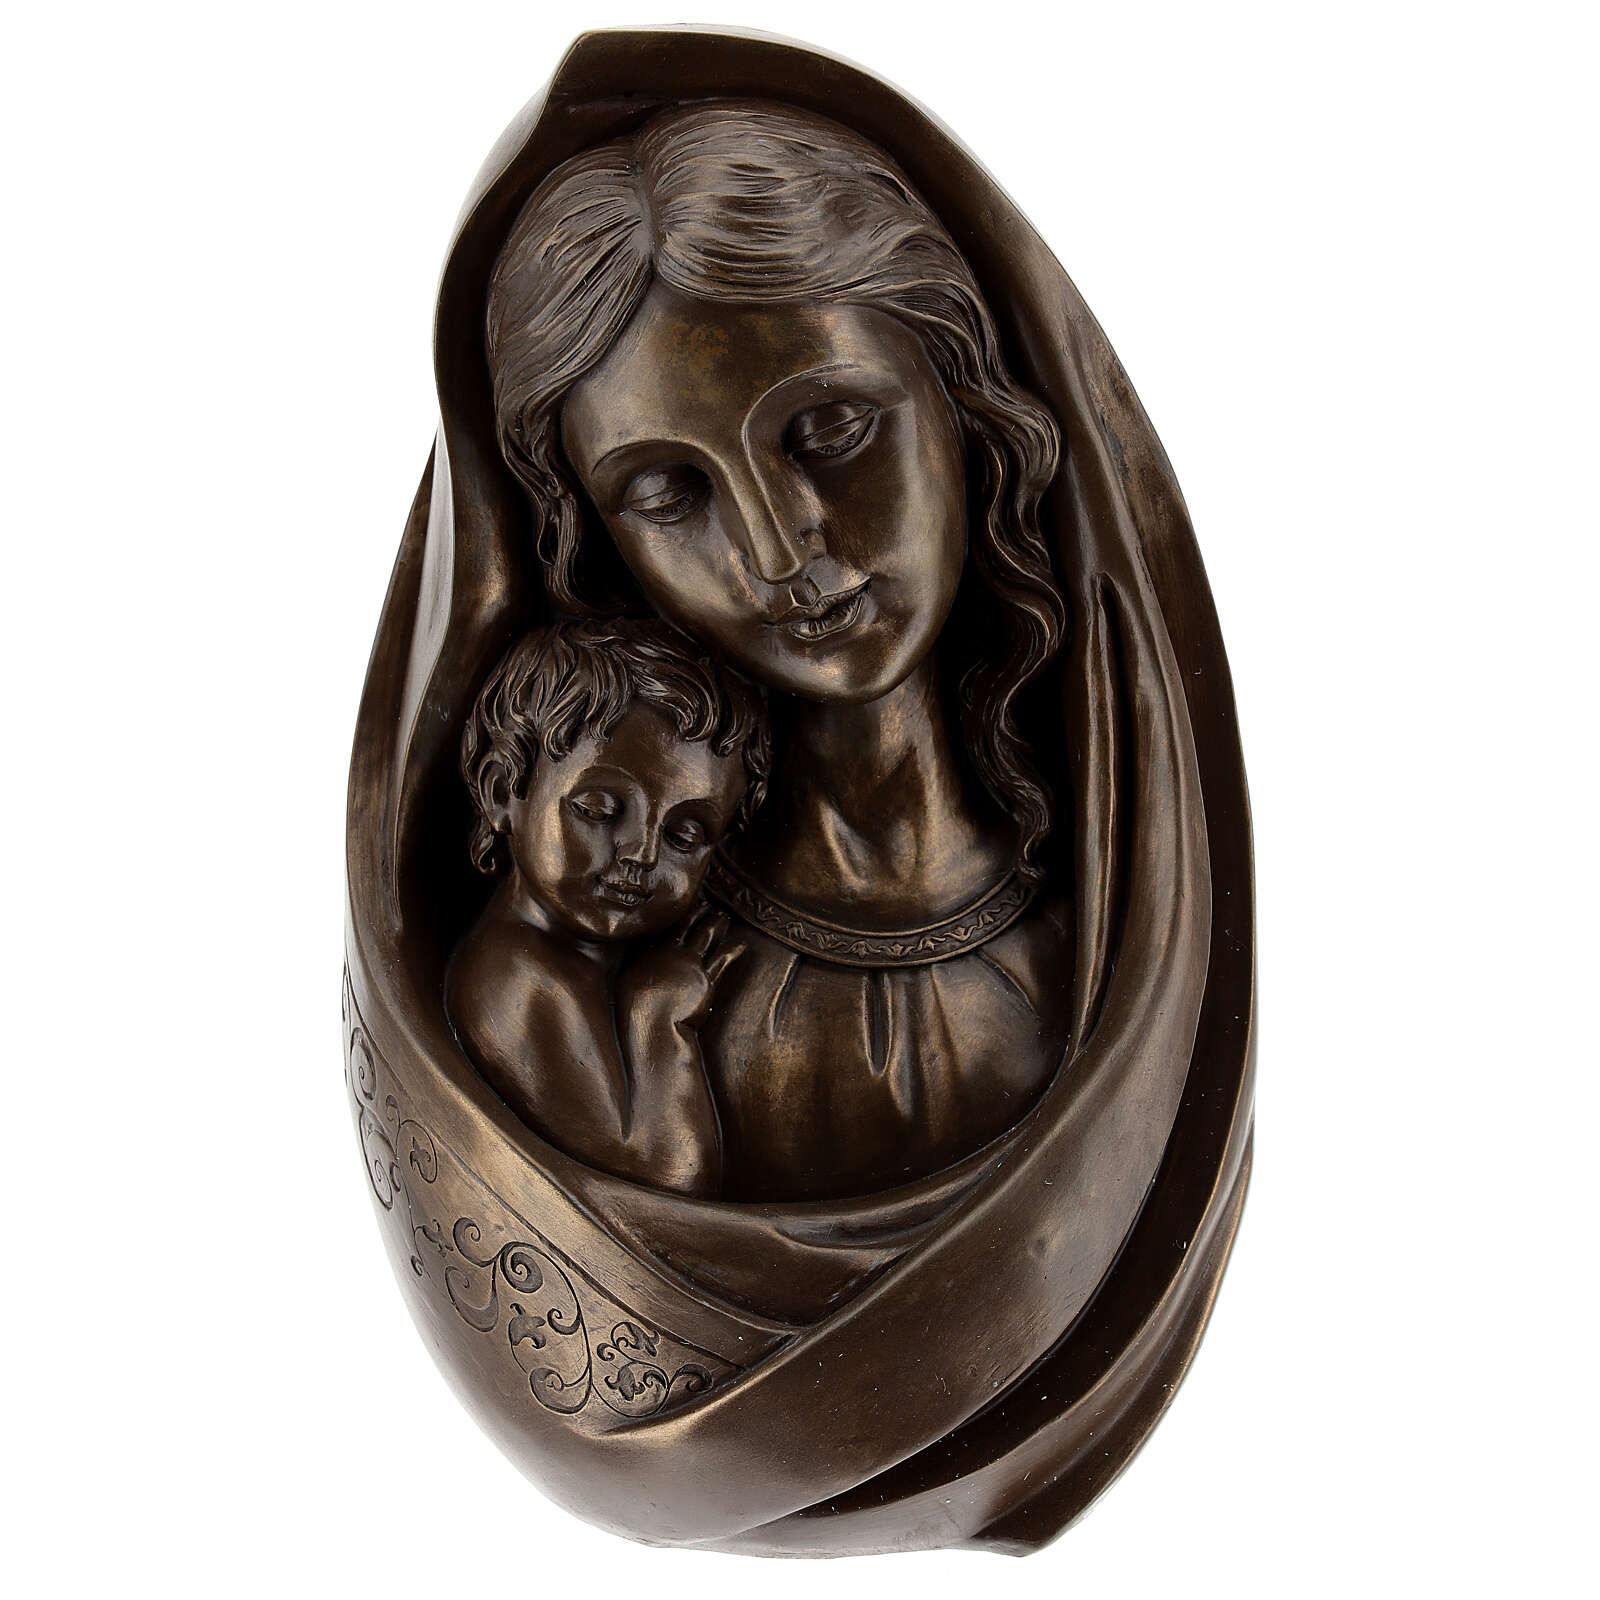 Virgin Mary and Baby Jesus bust in bronze resin 23x15 cm 4